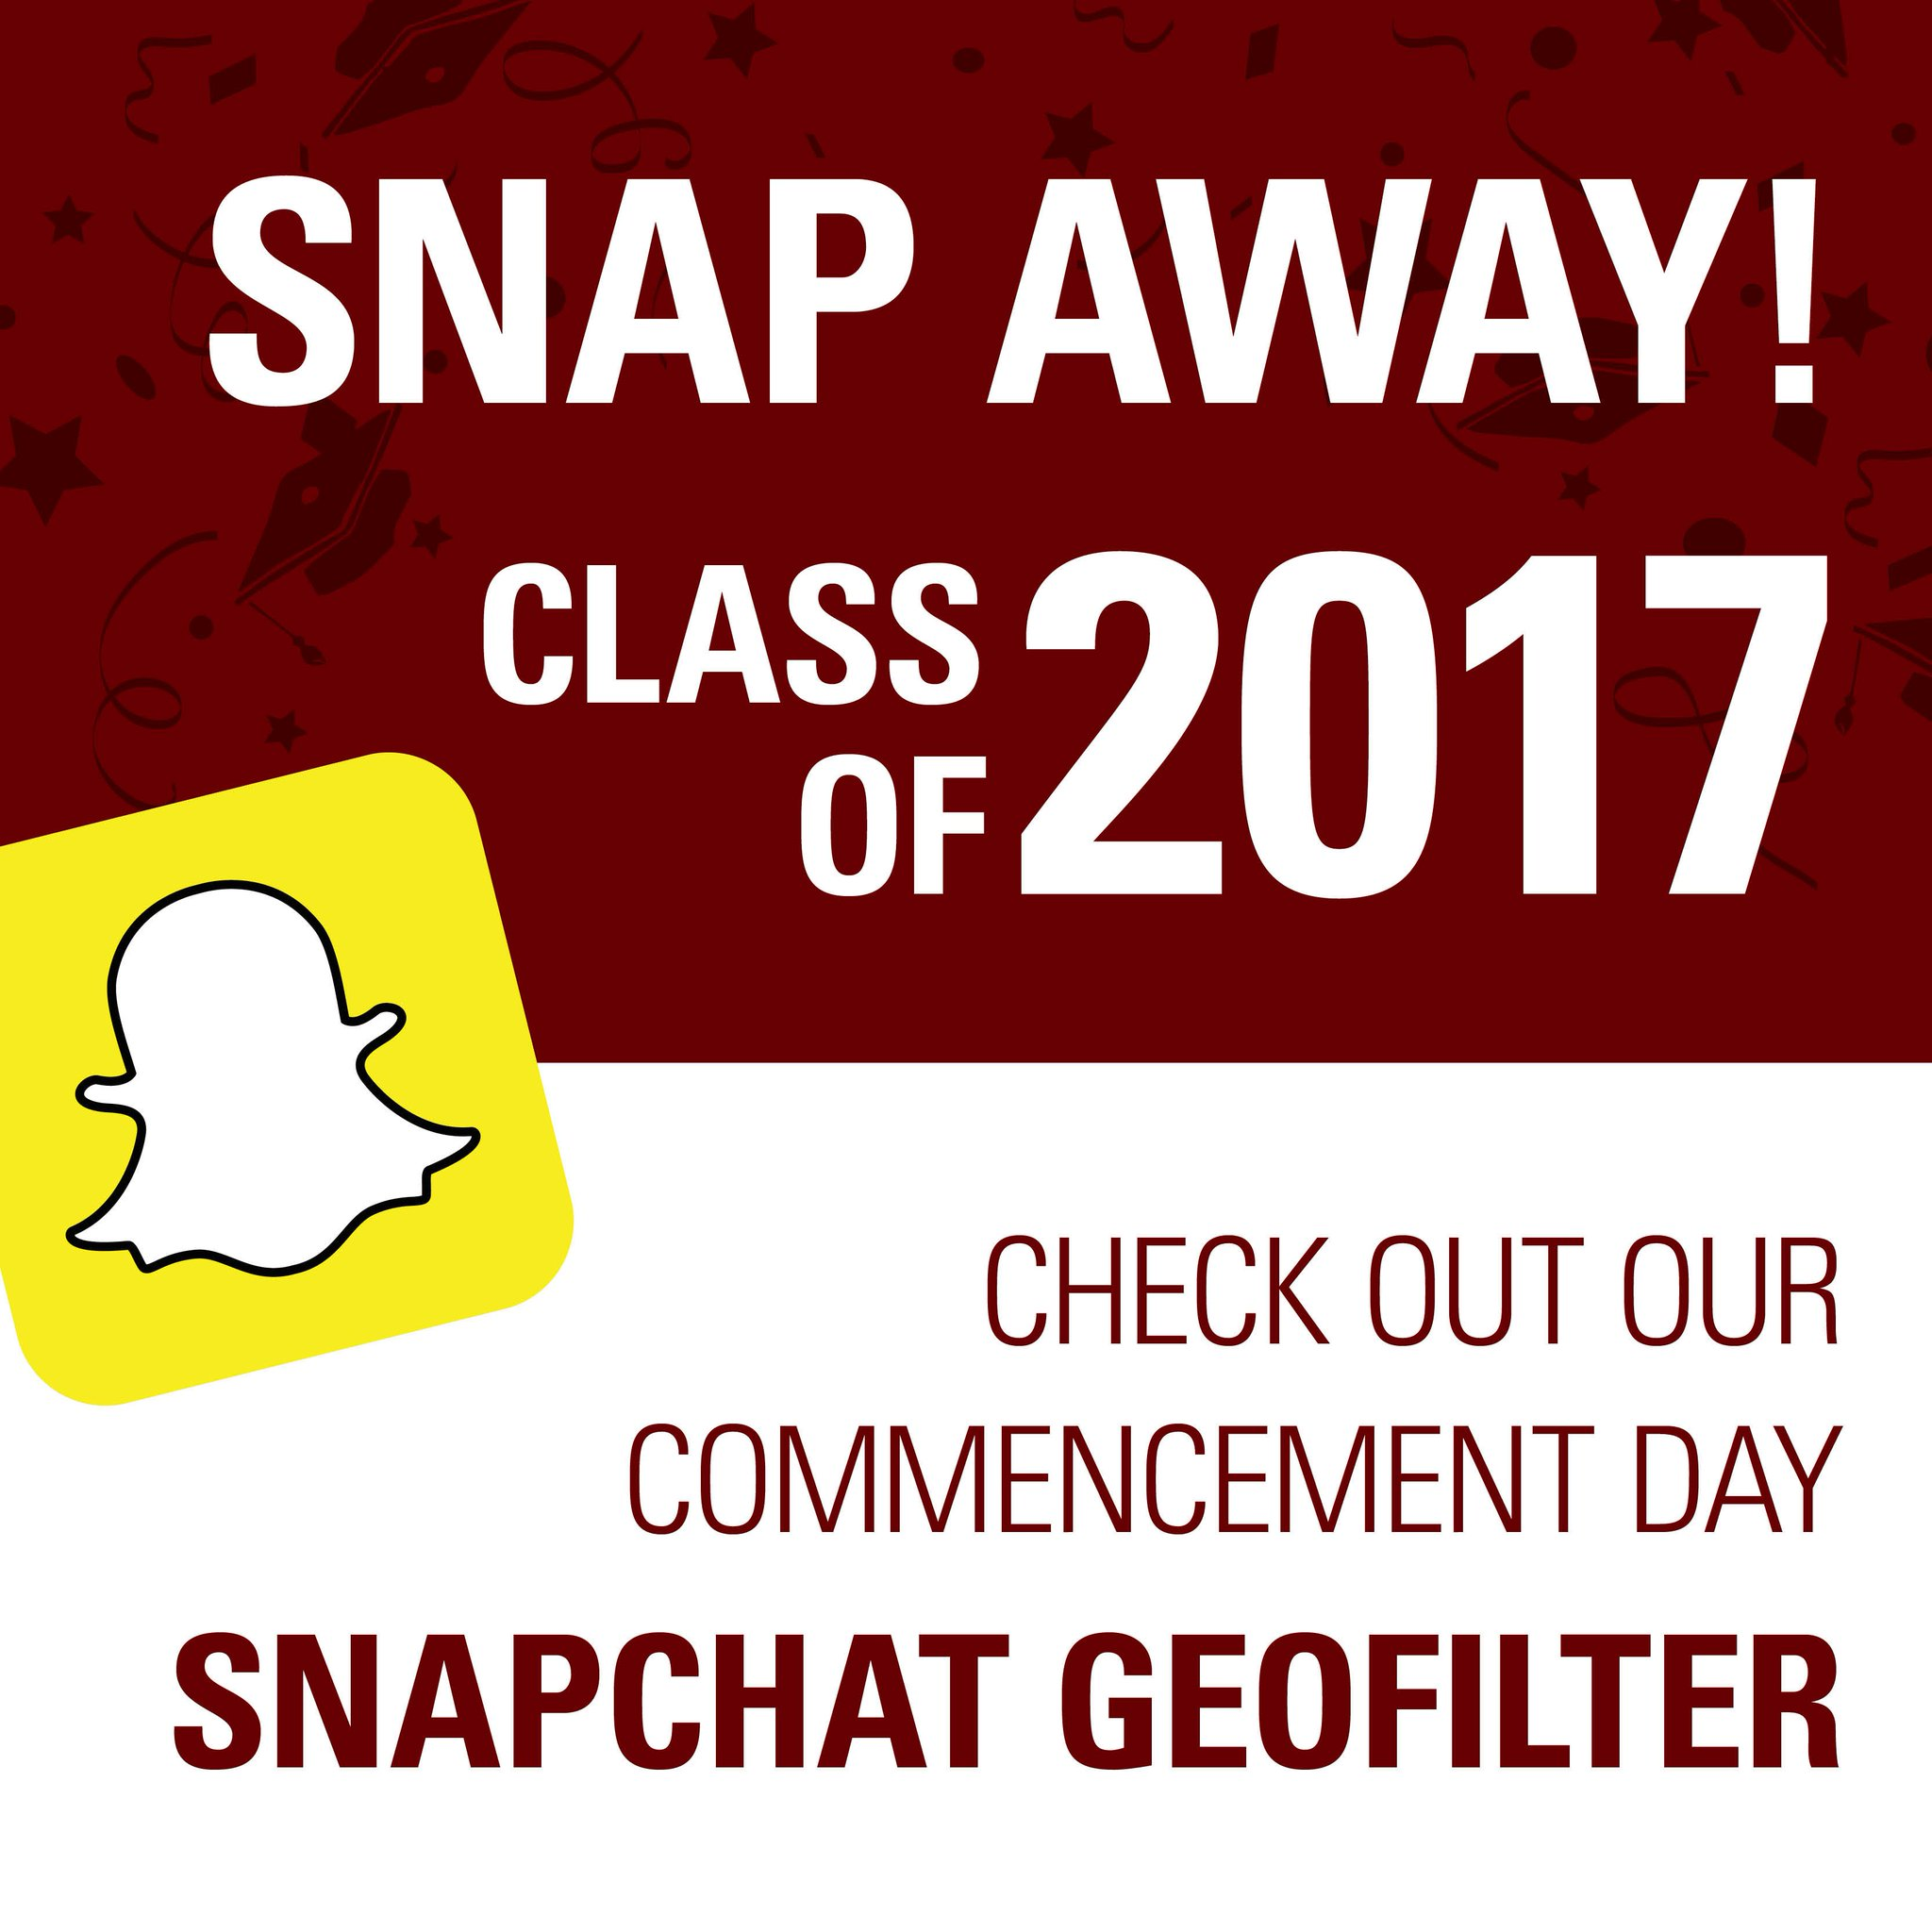 Hey Logger grads + everyone coming to Commencement! Be sure to check out our #Classof2017 Snapchat filter on Sunday! #alwaysalogger https://t.co/F6KlX5wC6y